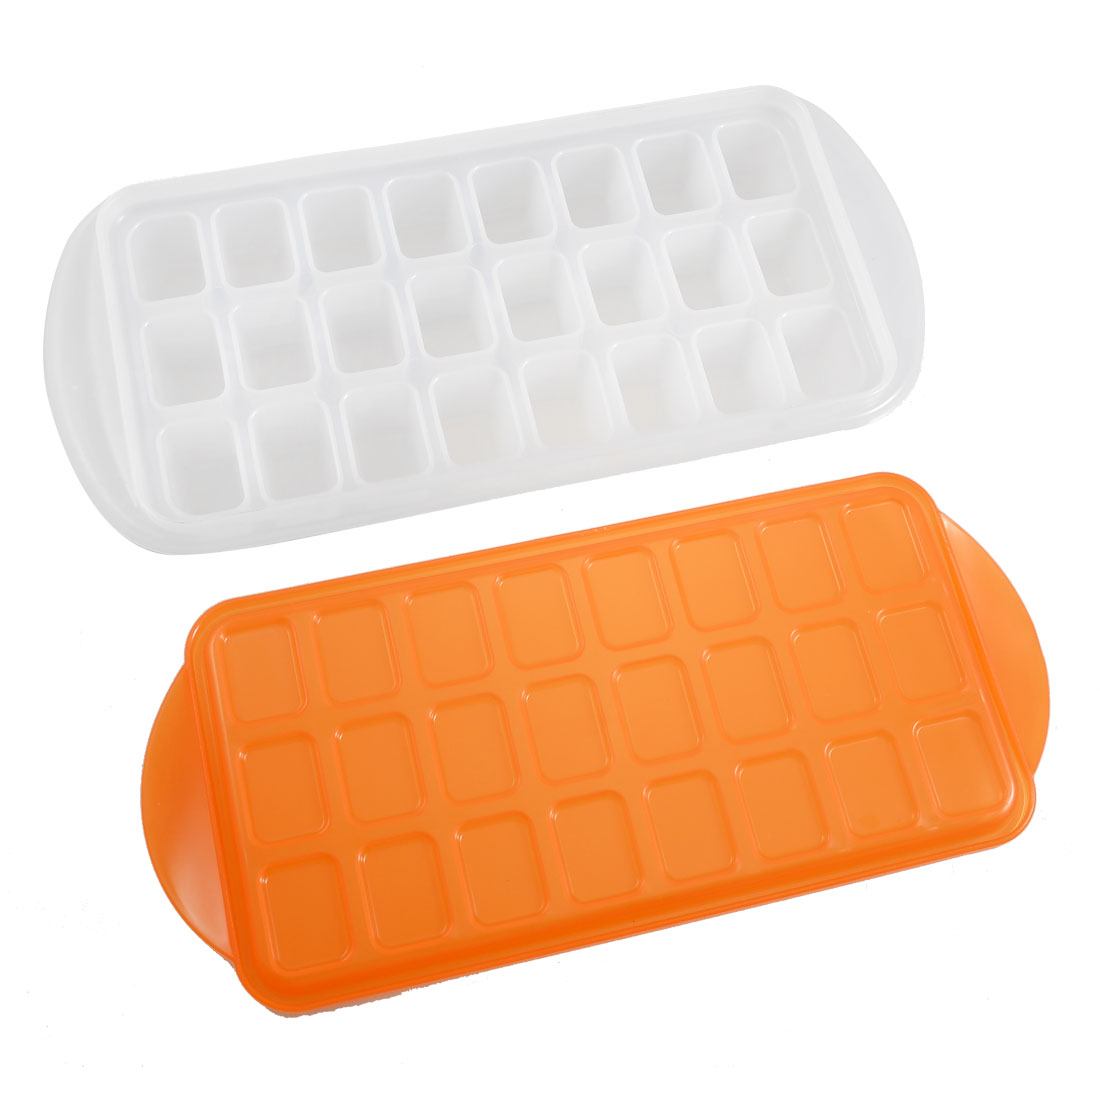 Orange Red Lid 24 Slots White Plastic Chocolate Maker Ice Cube Mold Mould